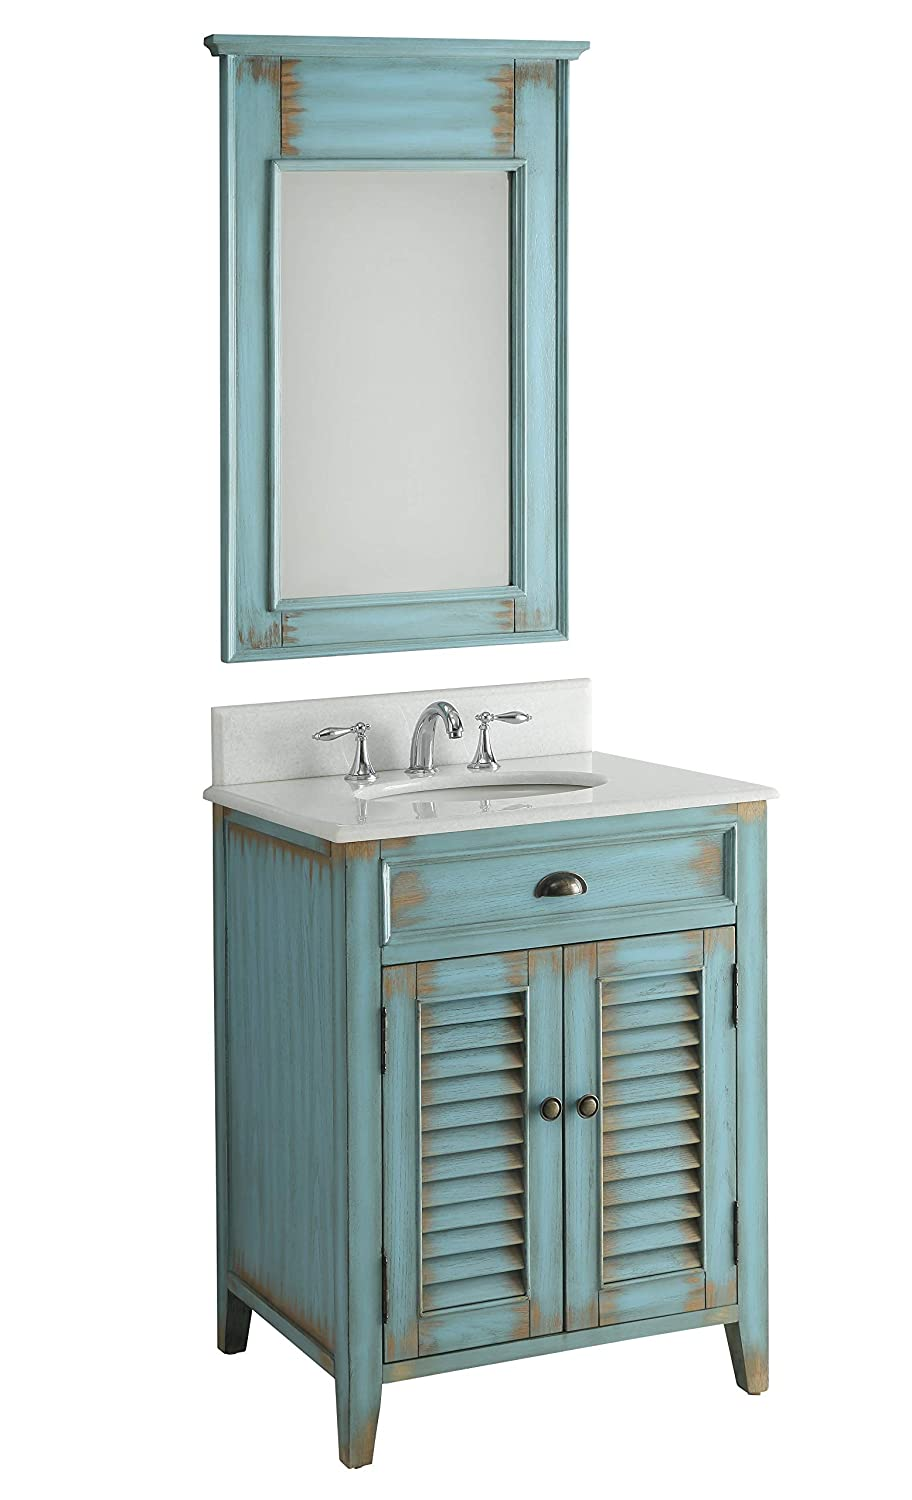 26 Cottage look Abbeville Bathroom Sink Vanity with Mirror CF-28883-MR28883